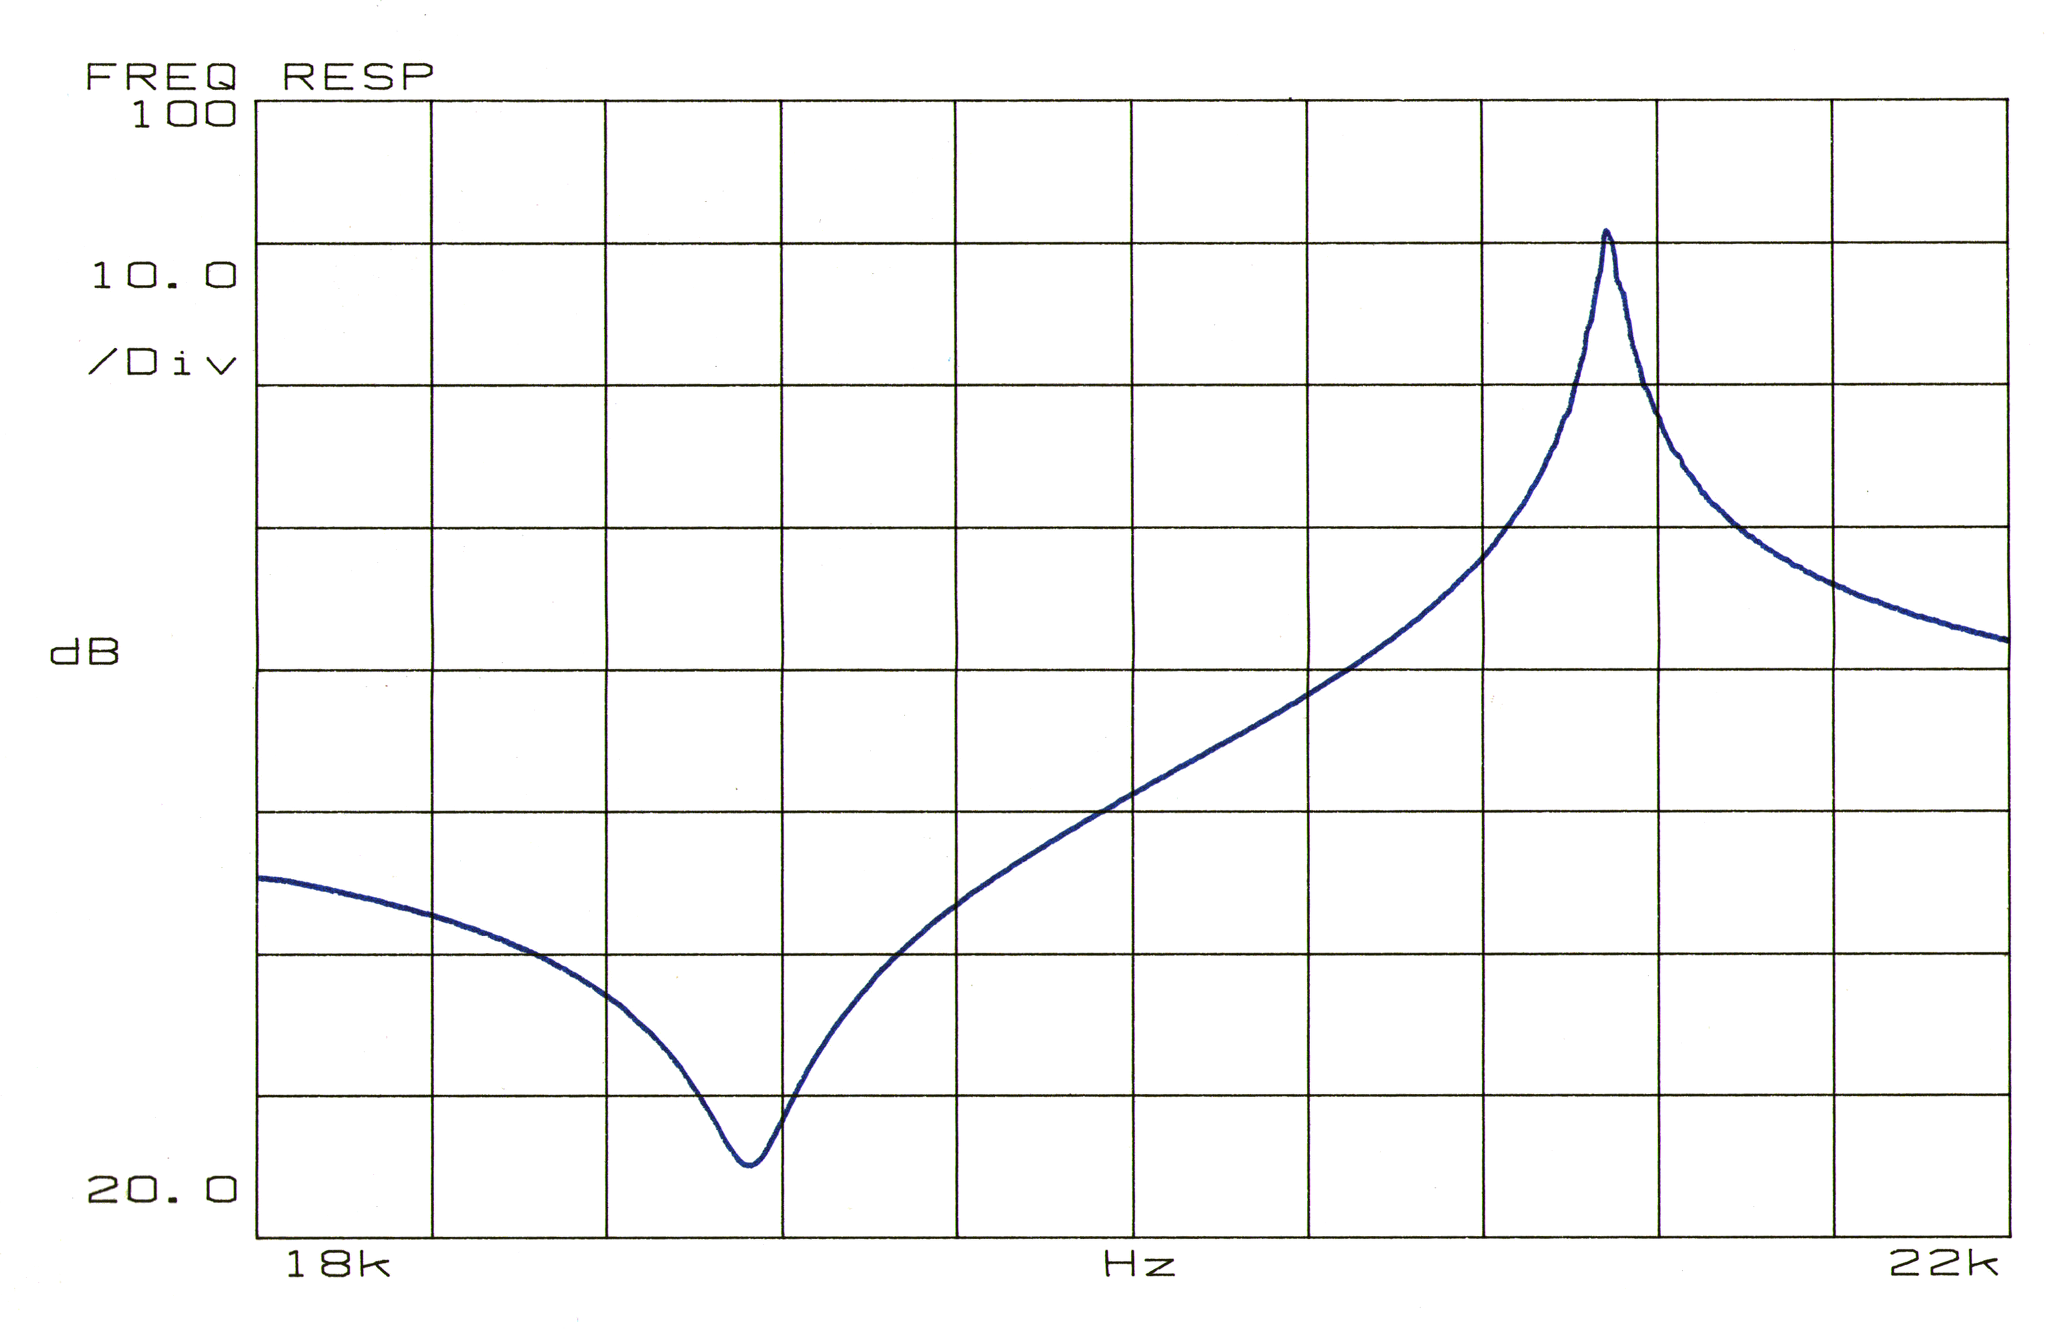 Frequency response impedance plot for a 20 kHz ultrasonic transducer